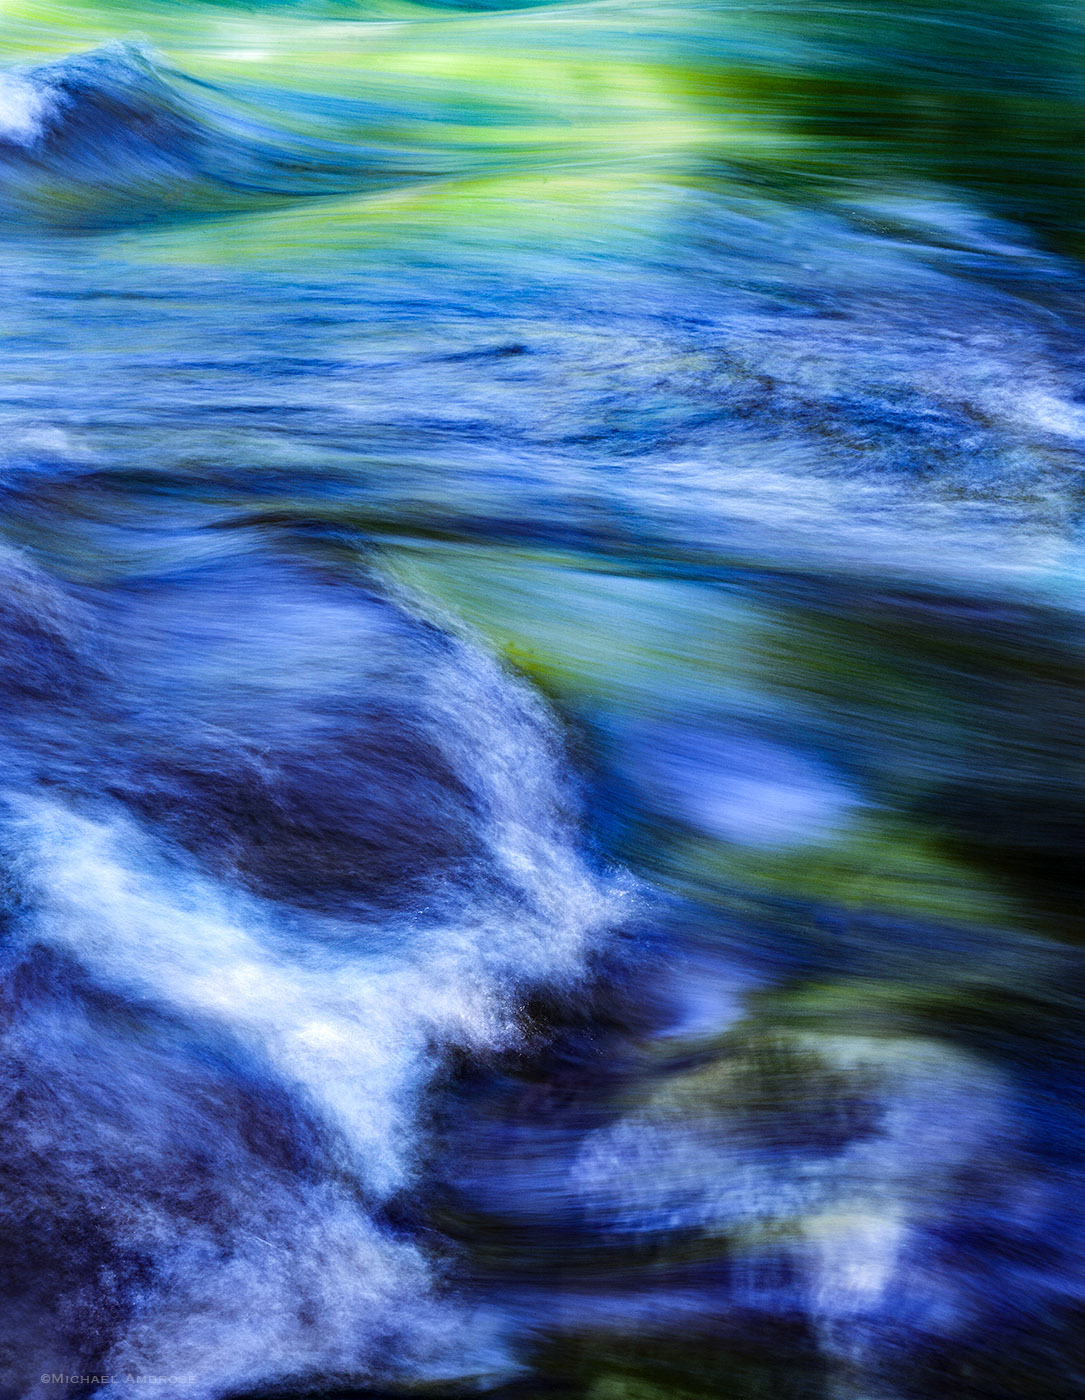 Vibrant green and blues mix in this long exposure of the Merced River in Yosemite Valley on a spring day.